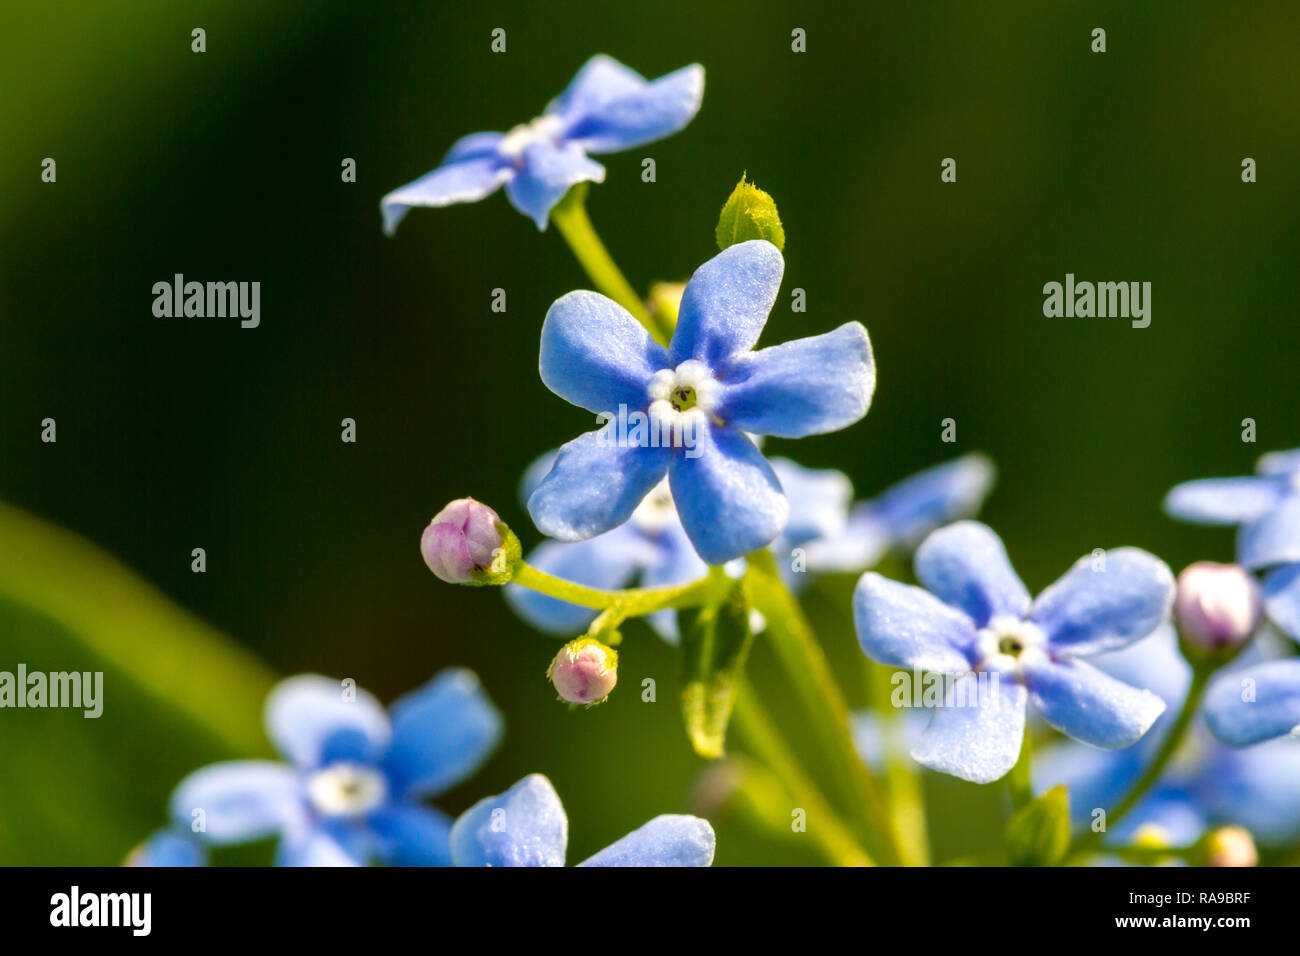 Forget-me-nots flowers in spring on green natural background. Romantic gentle artistic image. - Stock Image